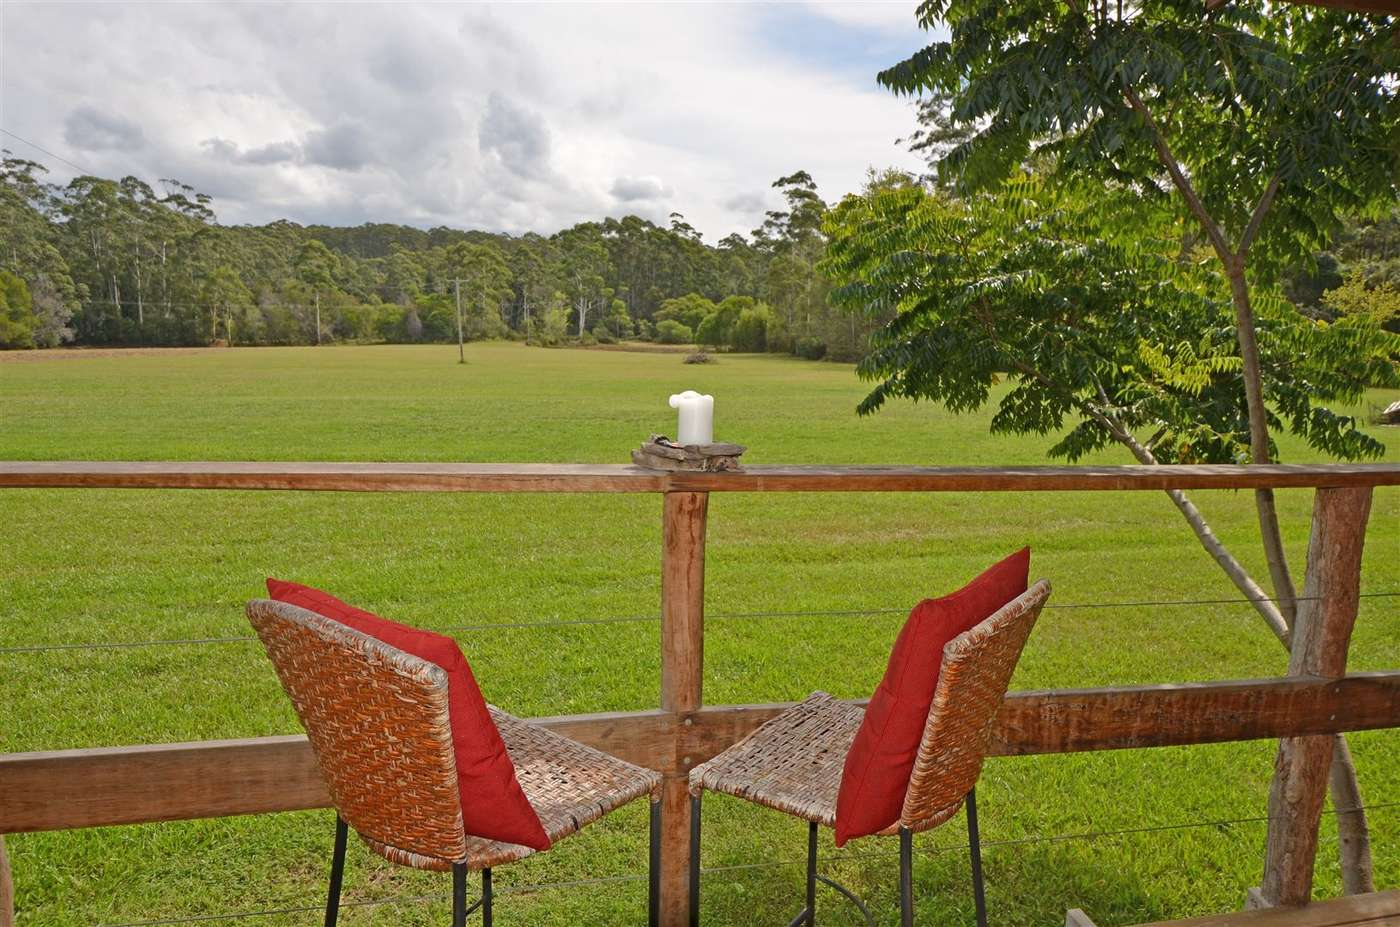 Main view of Homely rural listing, Address available on request, Bobs Creek, NSW 2439